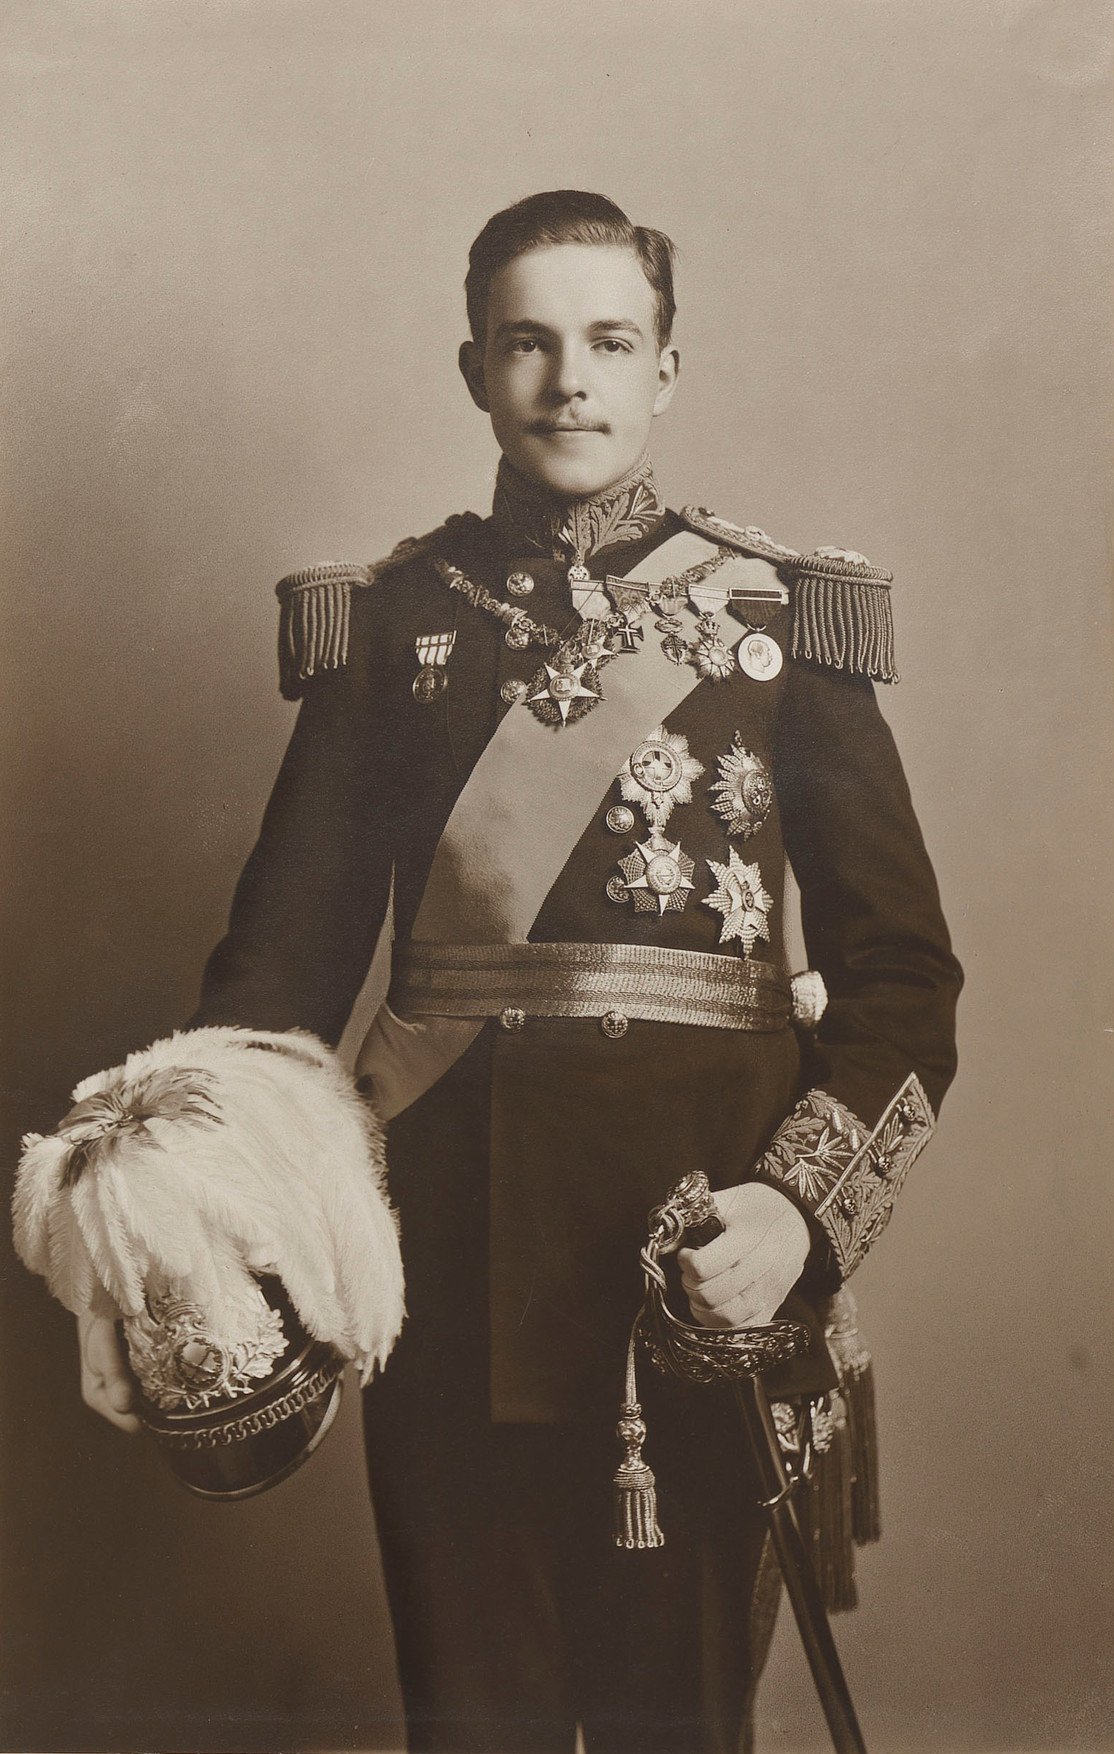 manoel_ii,_king_of_portugal_(nov_1909)